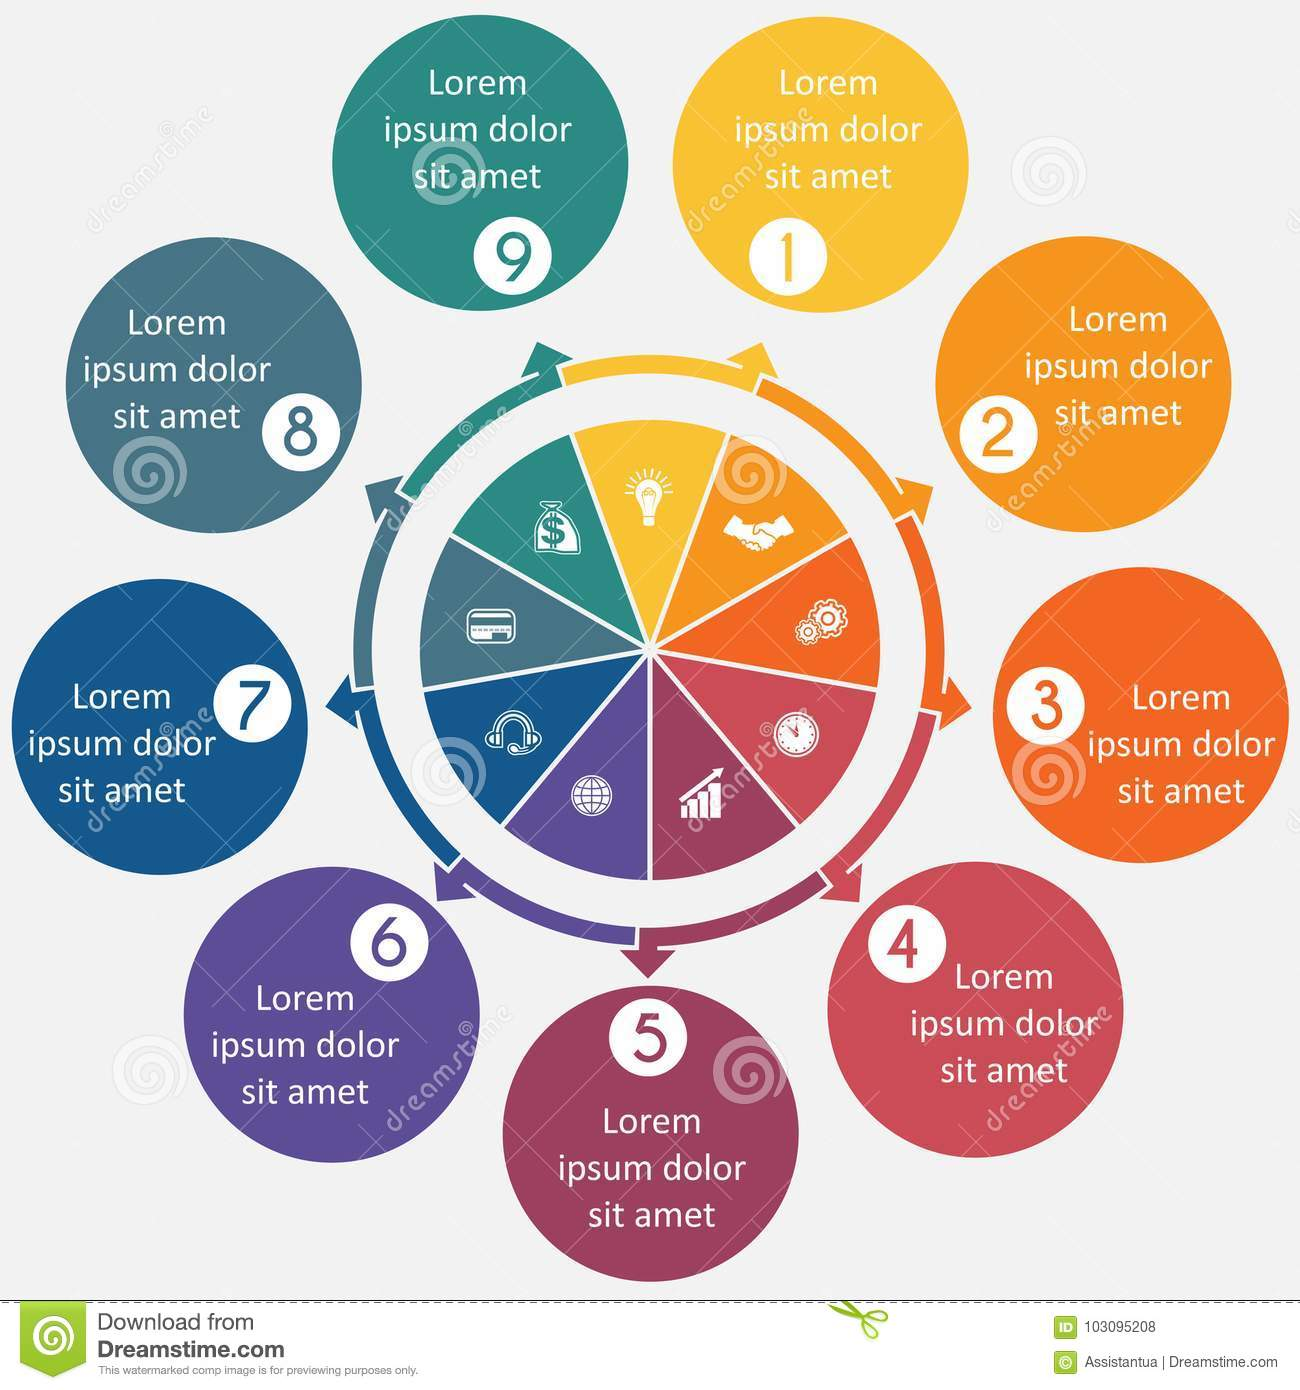 hight resolution of diagram 9 cyclic processes step by step colorful circles in a circle pie chart for workflow cycle processes diagrams business options banner